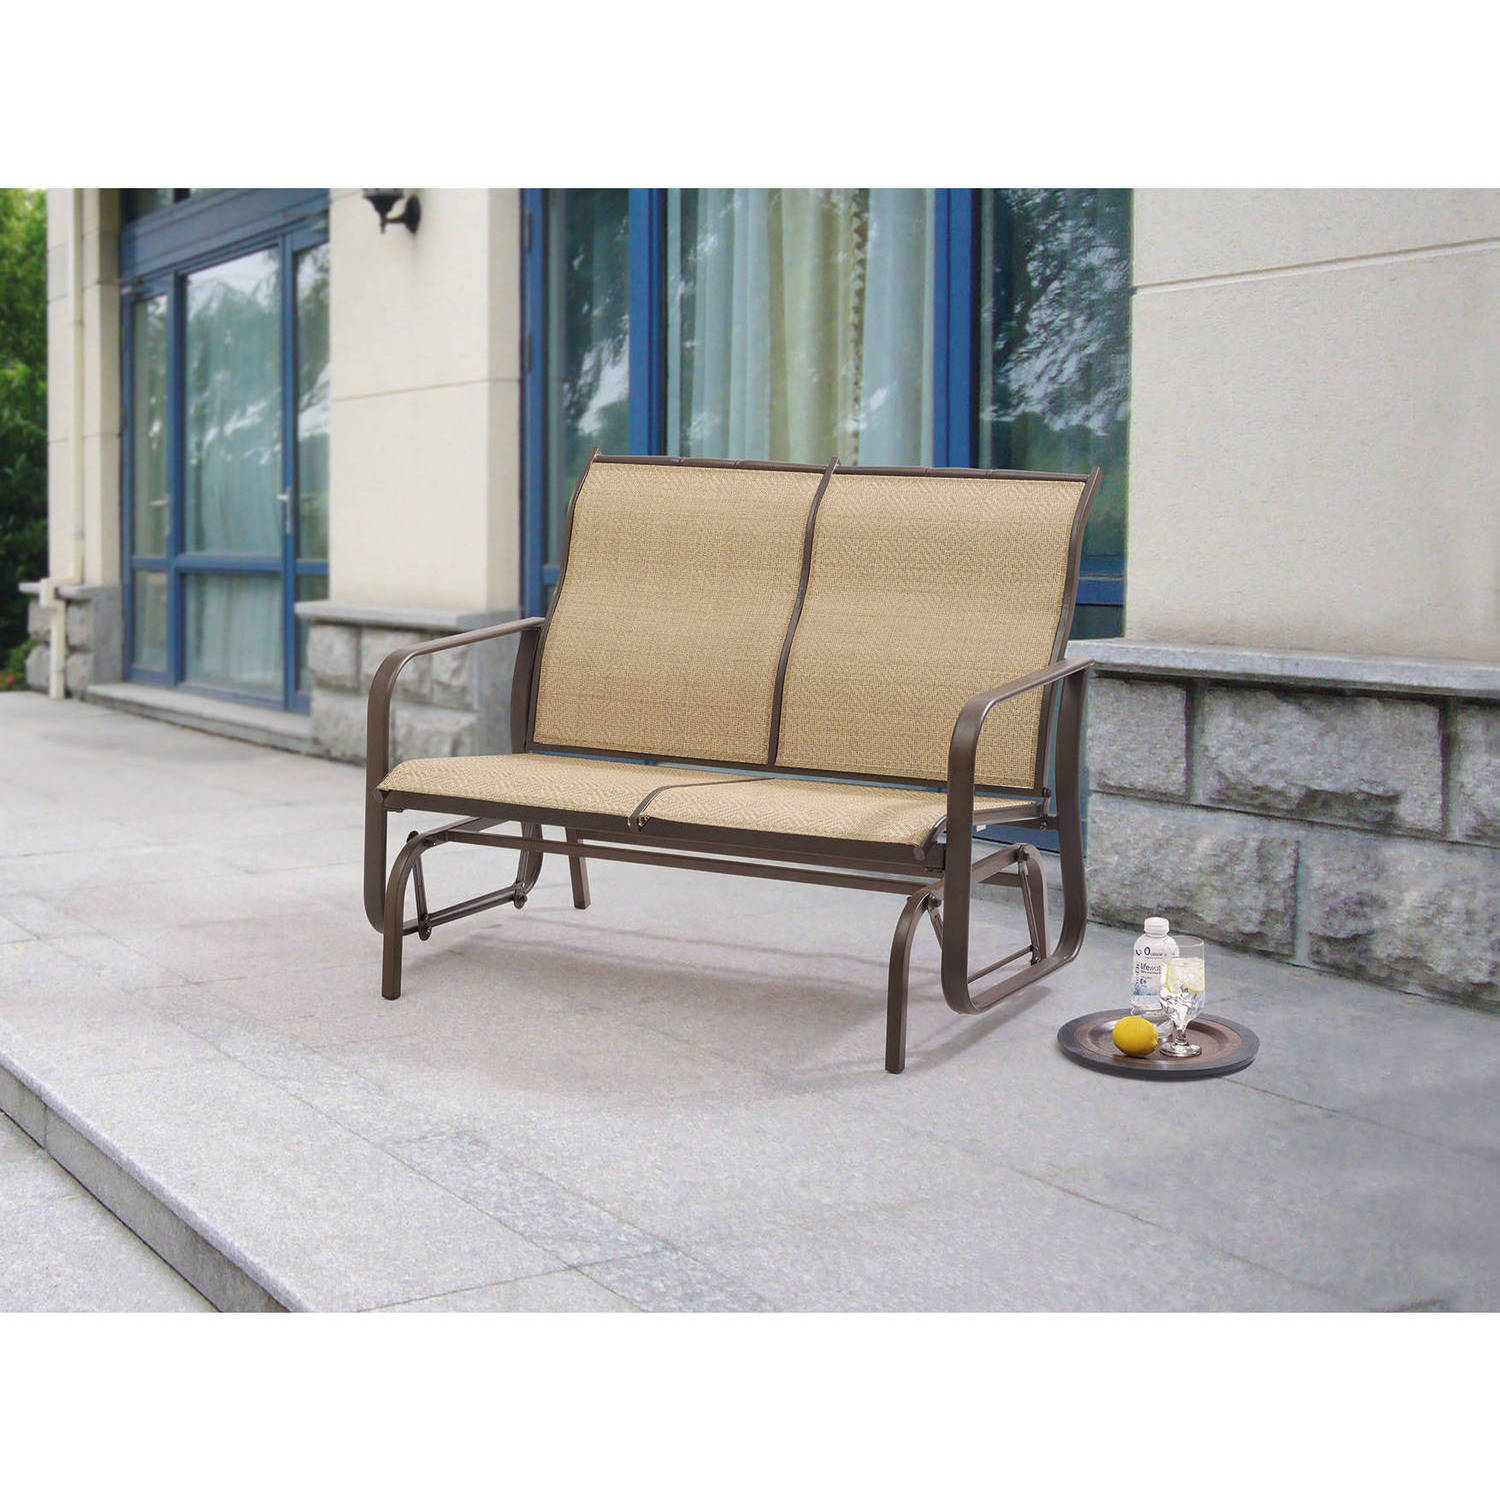 Mainstays Wesley Creek 2 Seat Outdoor Sling Seat Glider – Walmart Within Outdoor Swing Glider Chairs With Powder Coated Steel Frame (View 18 of 25)